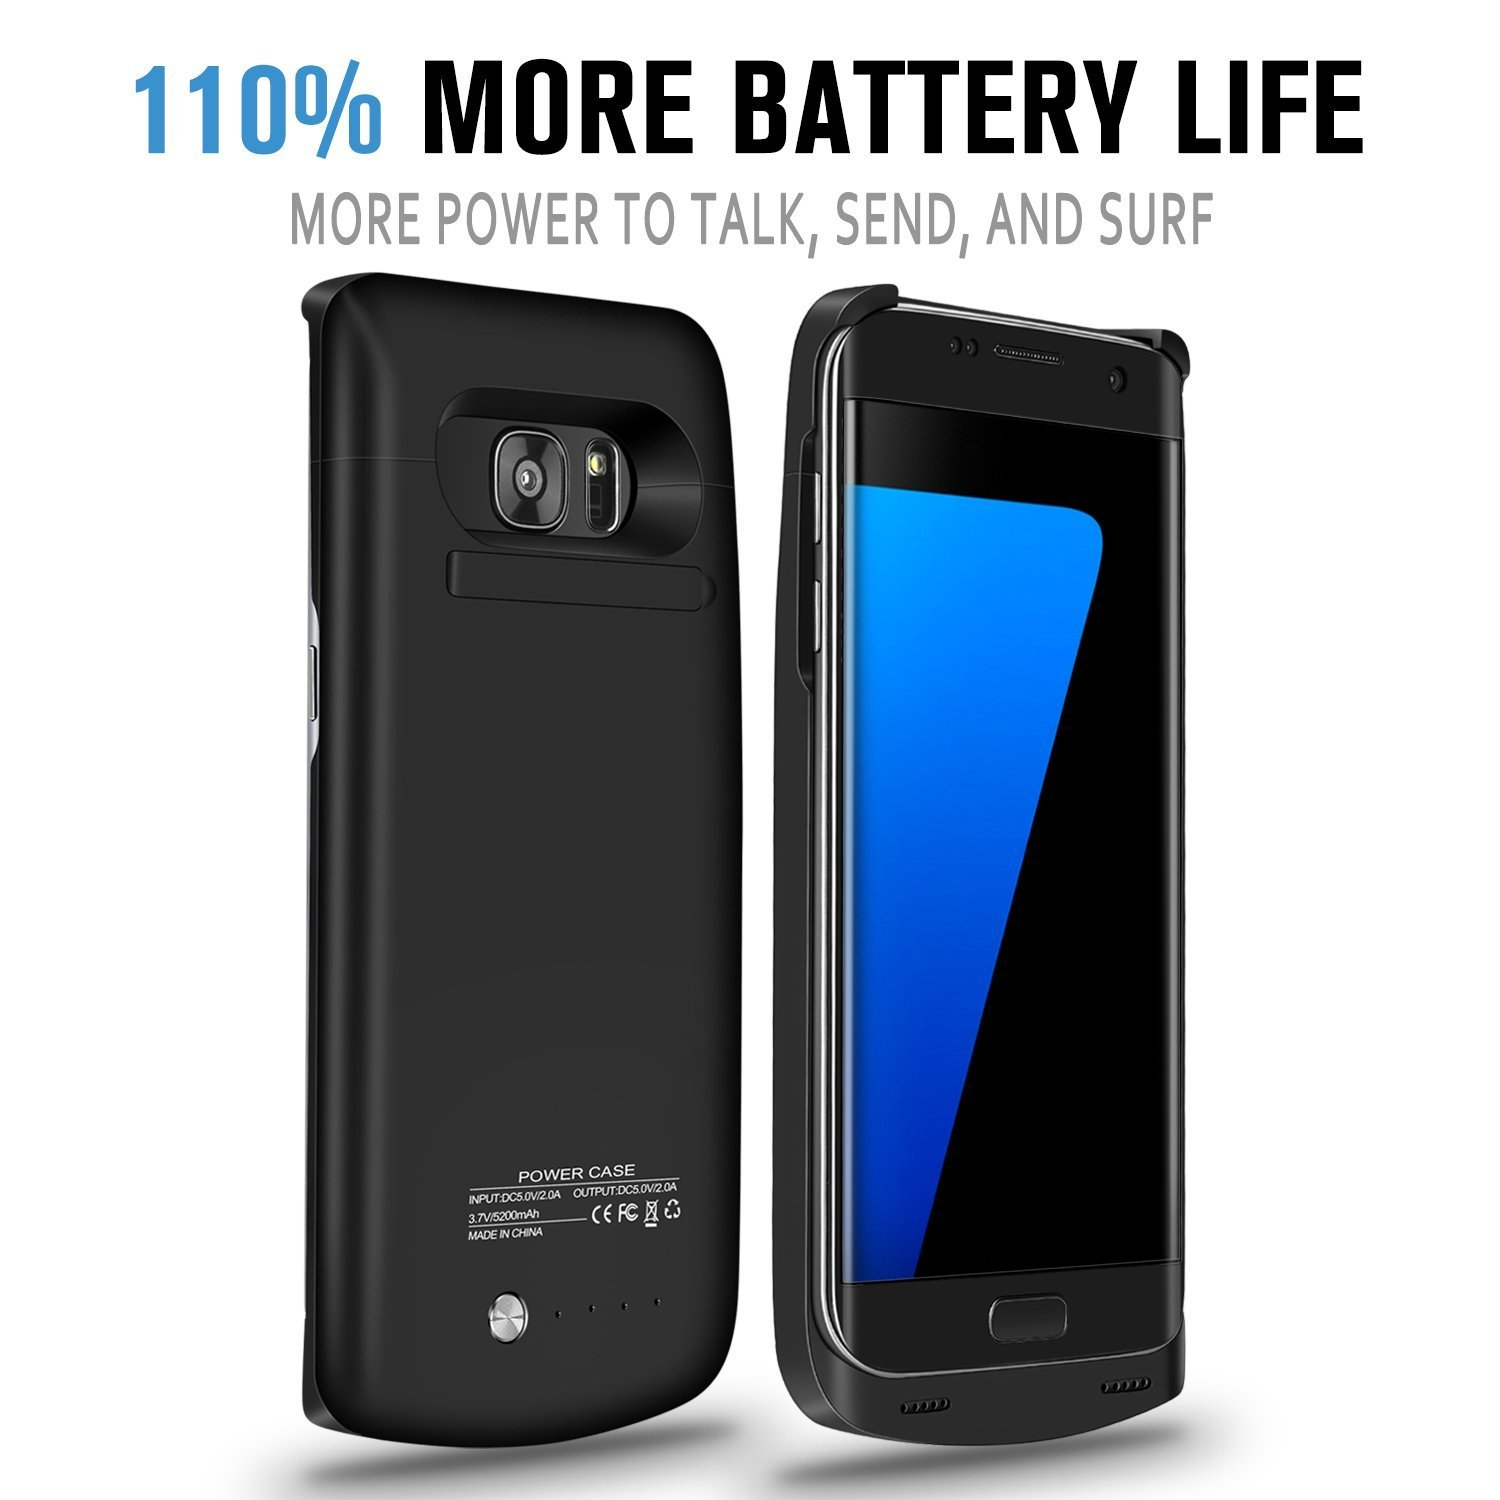 Galaxy S7 Edge Battery Case, 5200 mAh Slim Portable Rechargeable Extended Battery Pack Charger Case, Power Bank Charging Case with Kickstand for Samsung Galaxy S7 Edge-Black